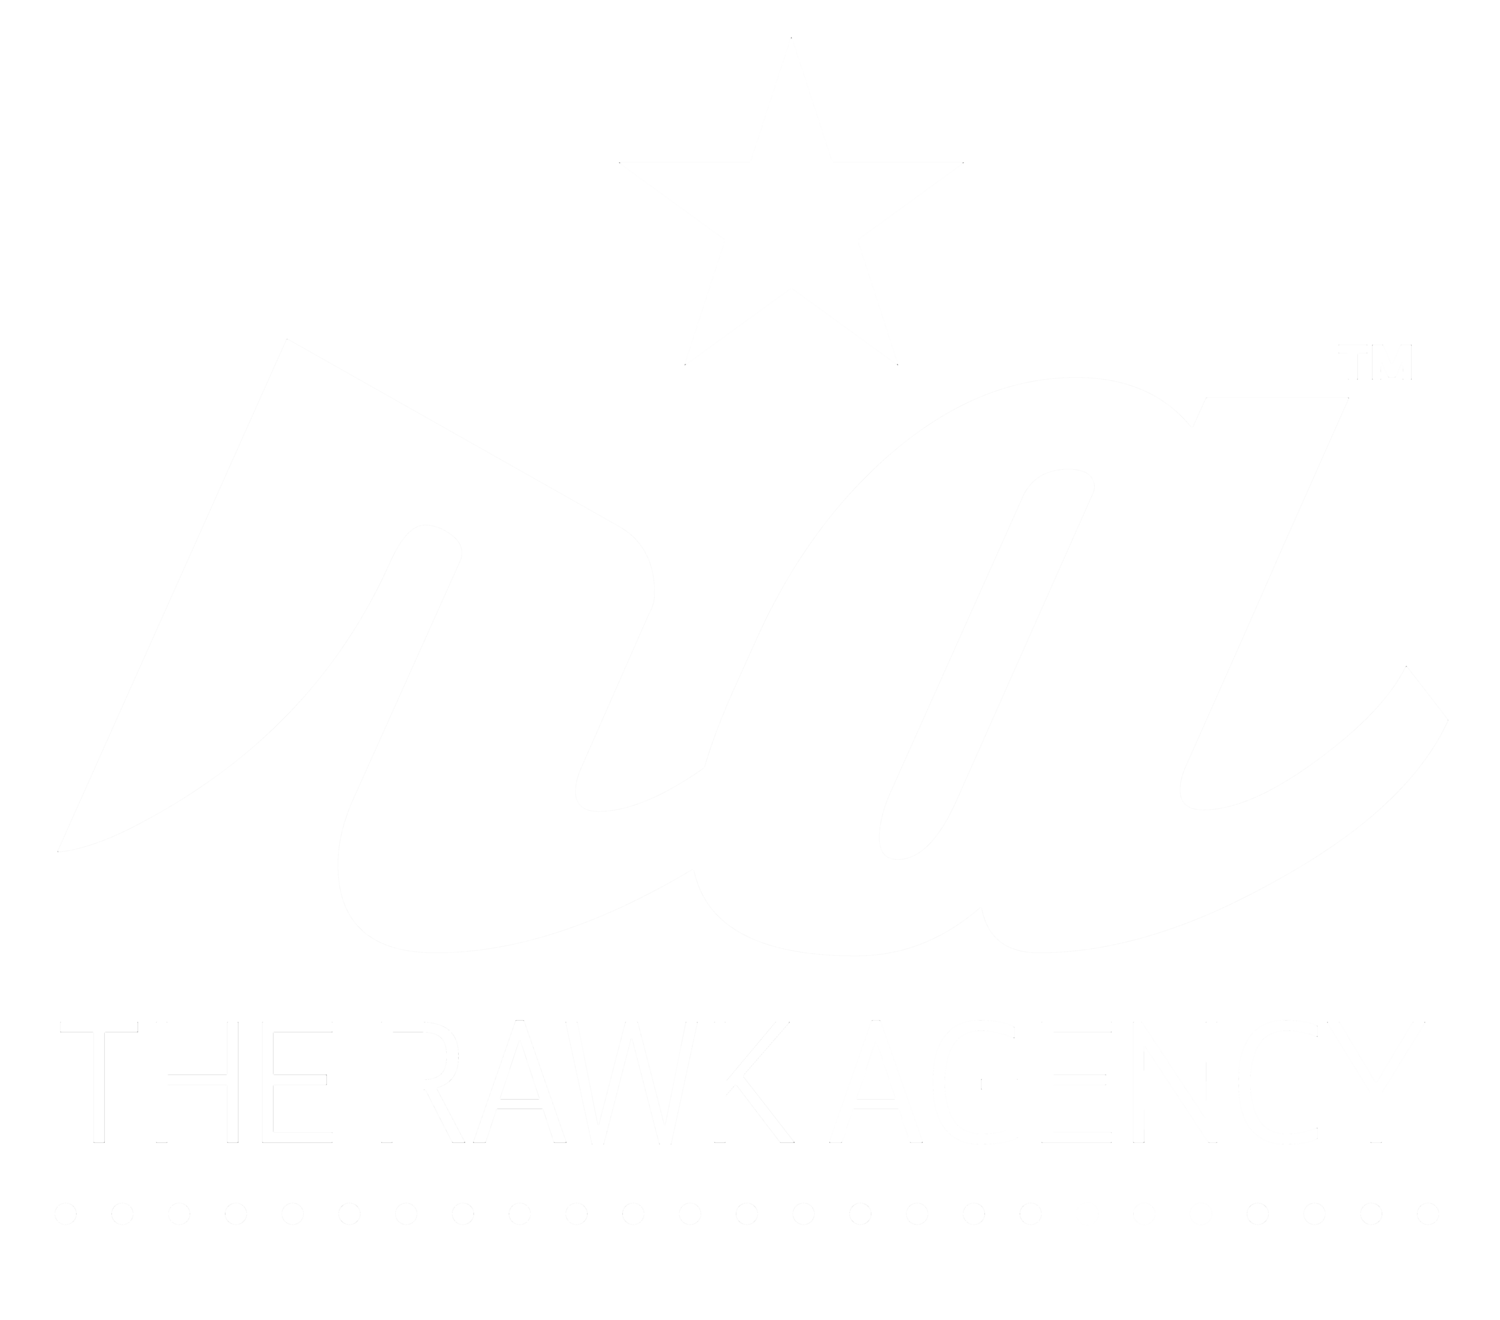 The RAWK Agency